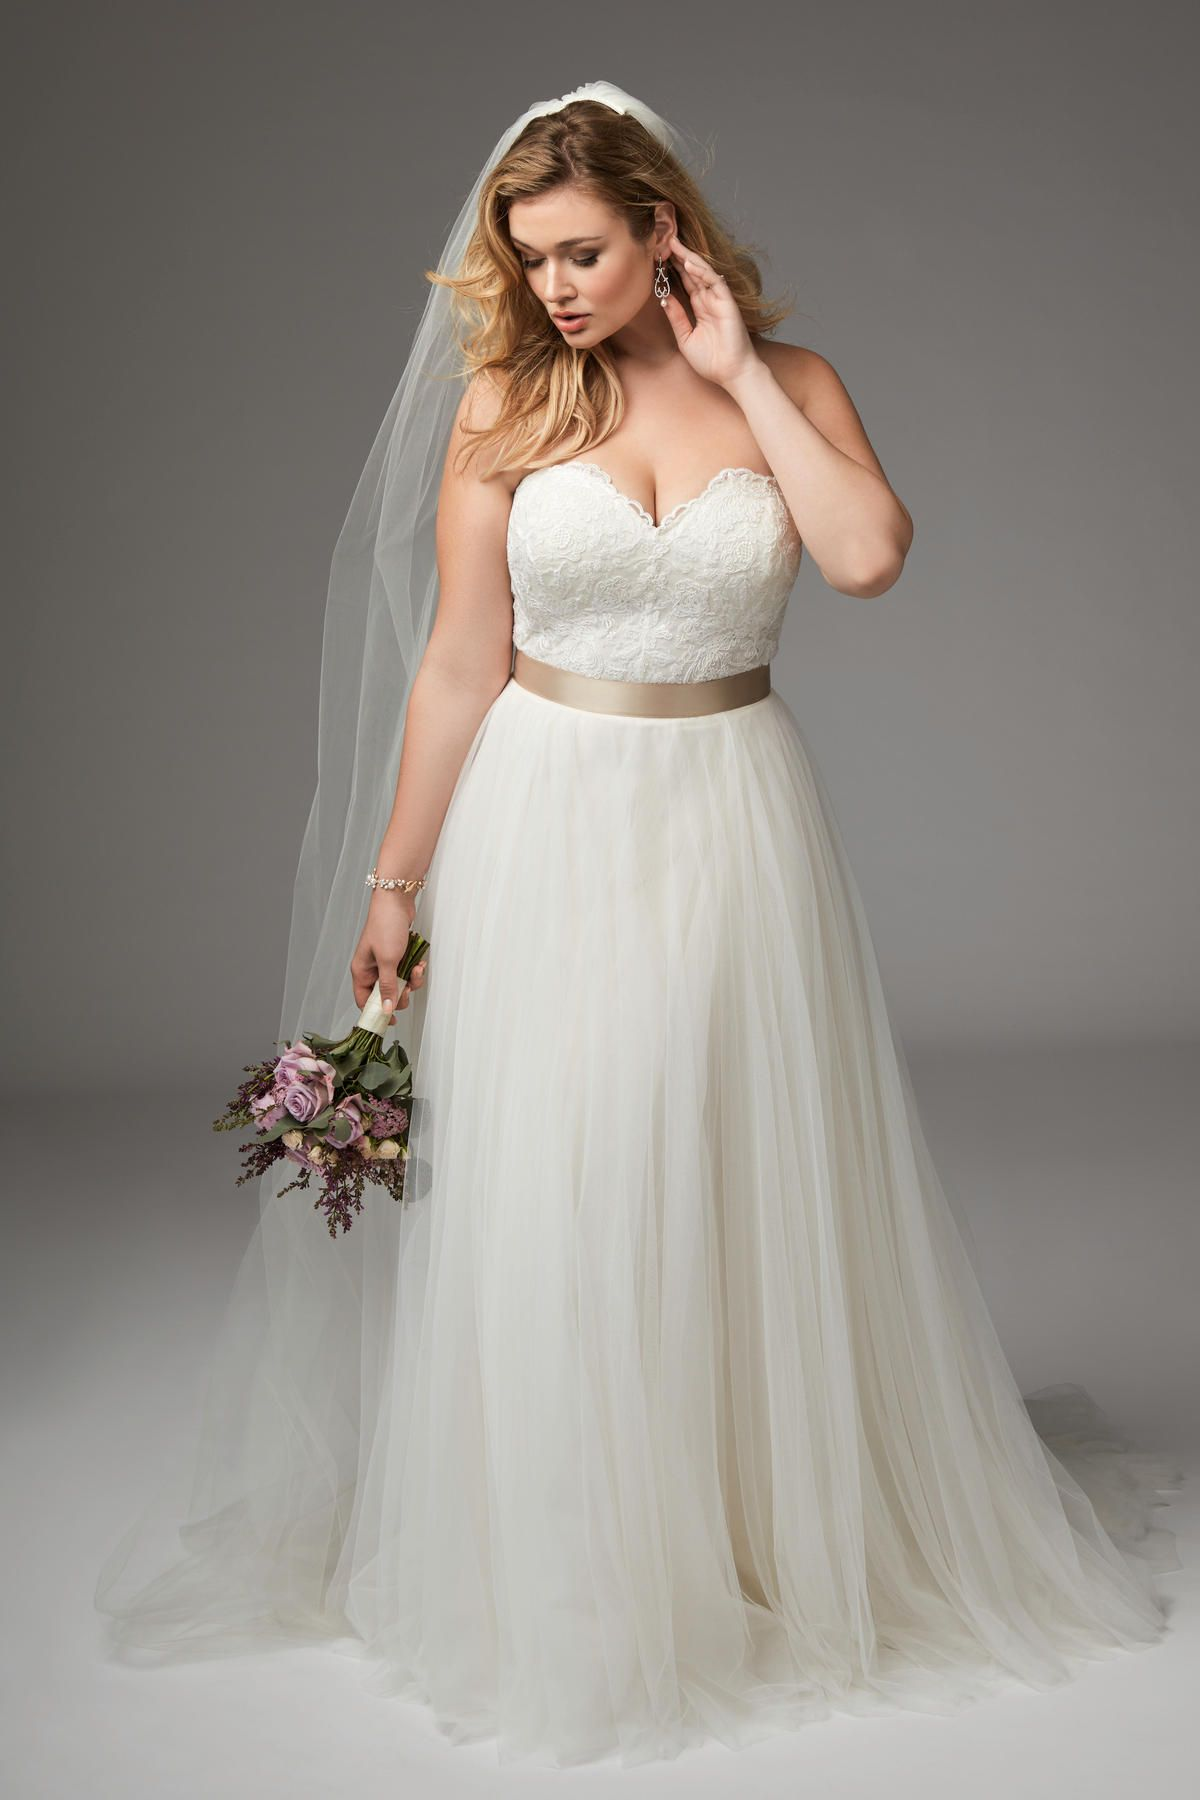 Soft And Sweet This Shimmer Tulle Ball Gown Is Accented With Beaded